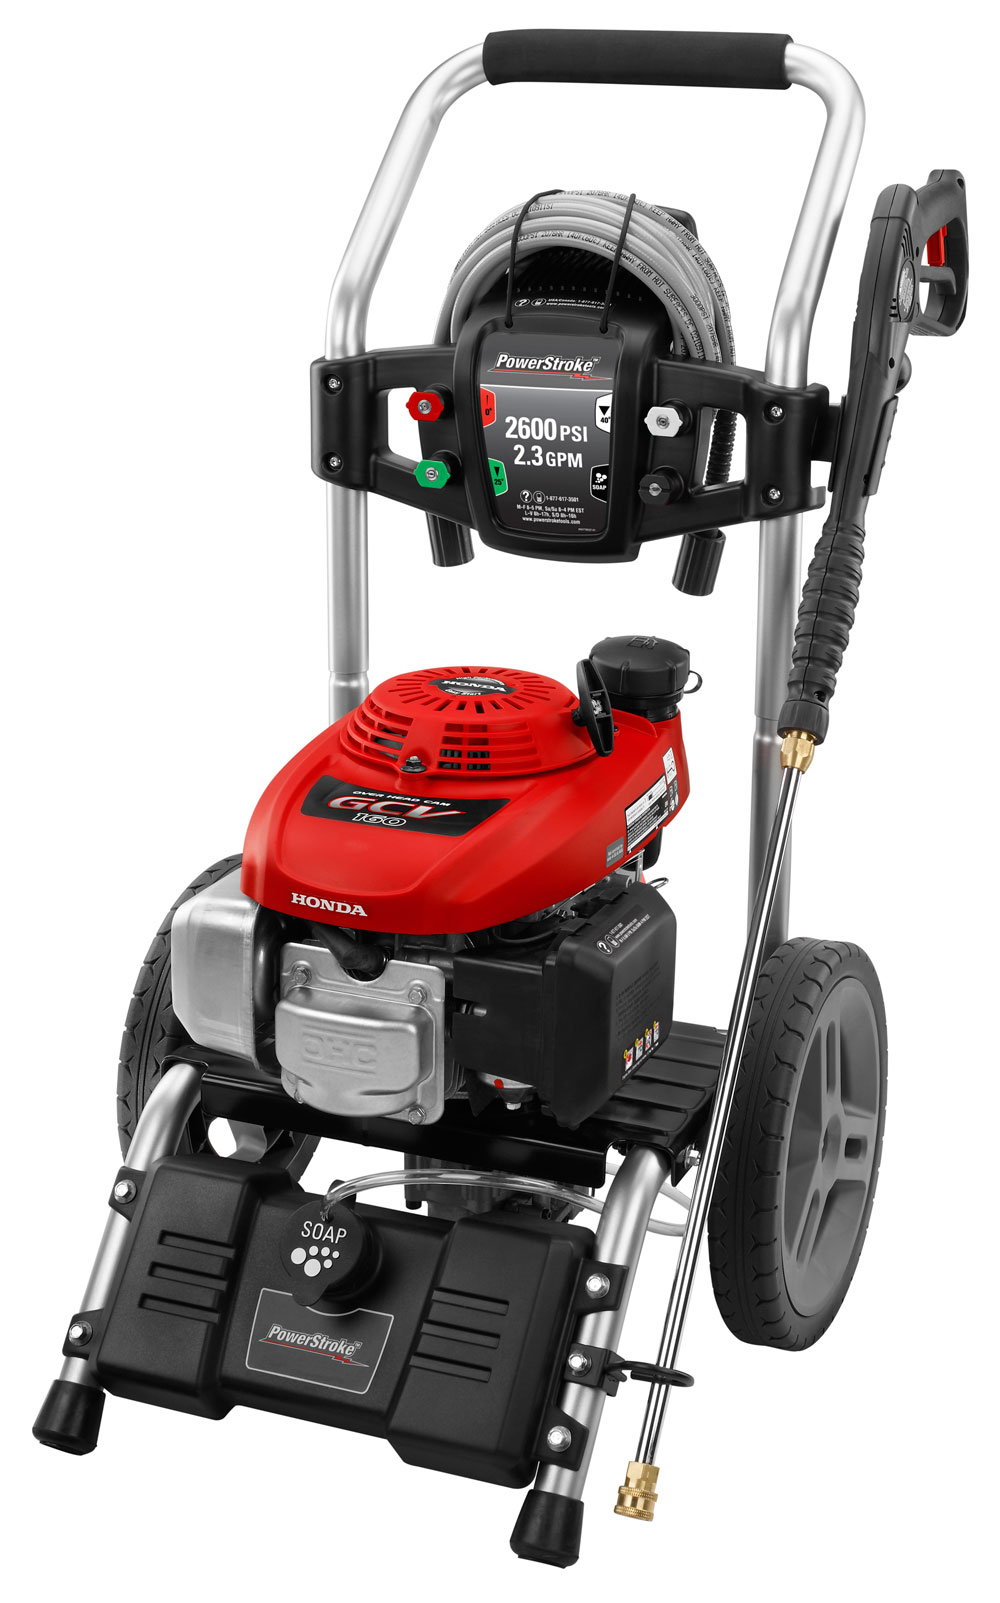 powerstroke-pressure-washer-gcv160